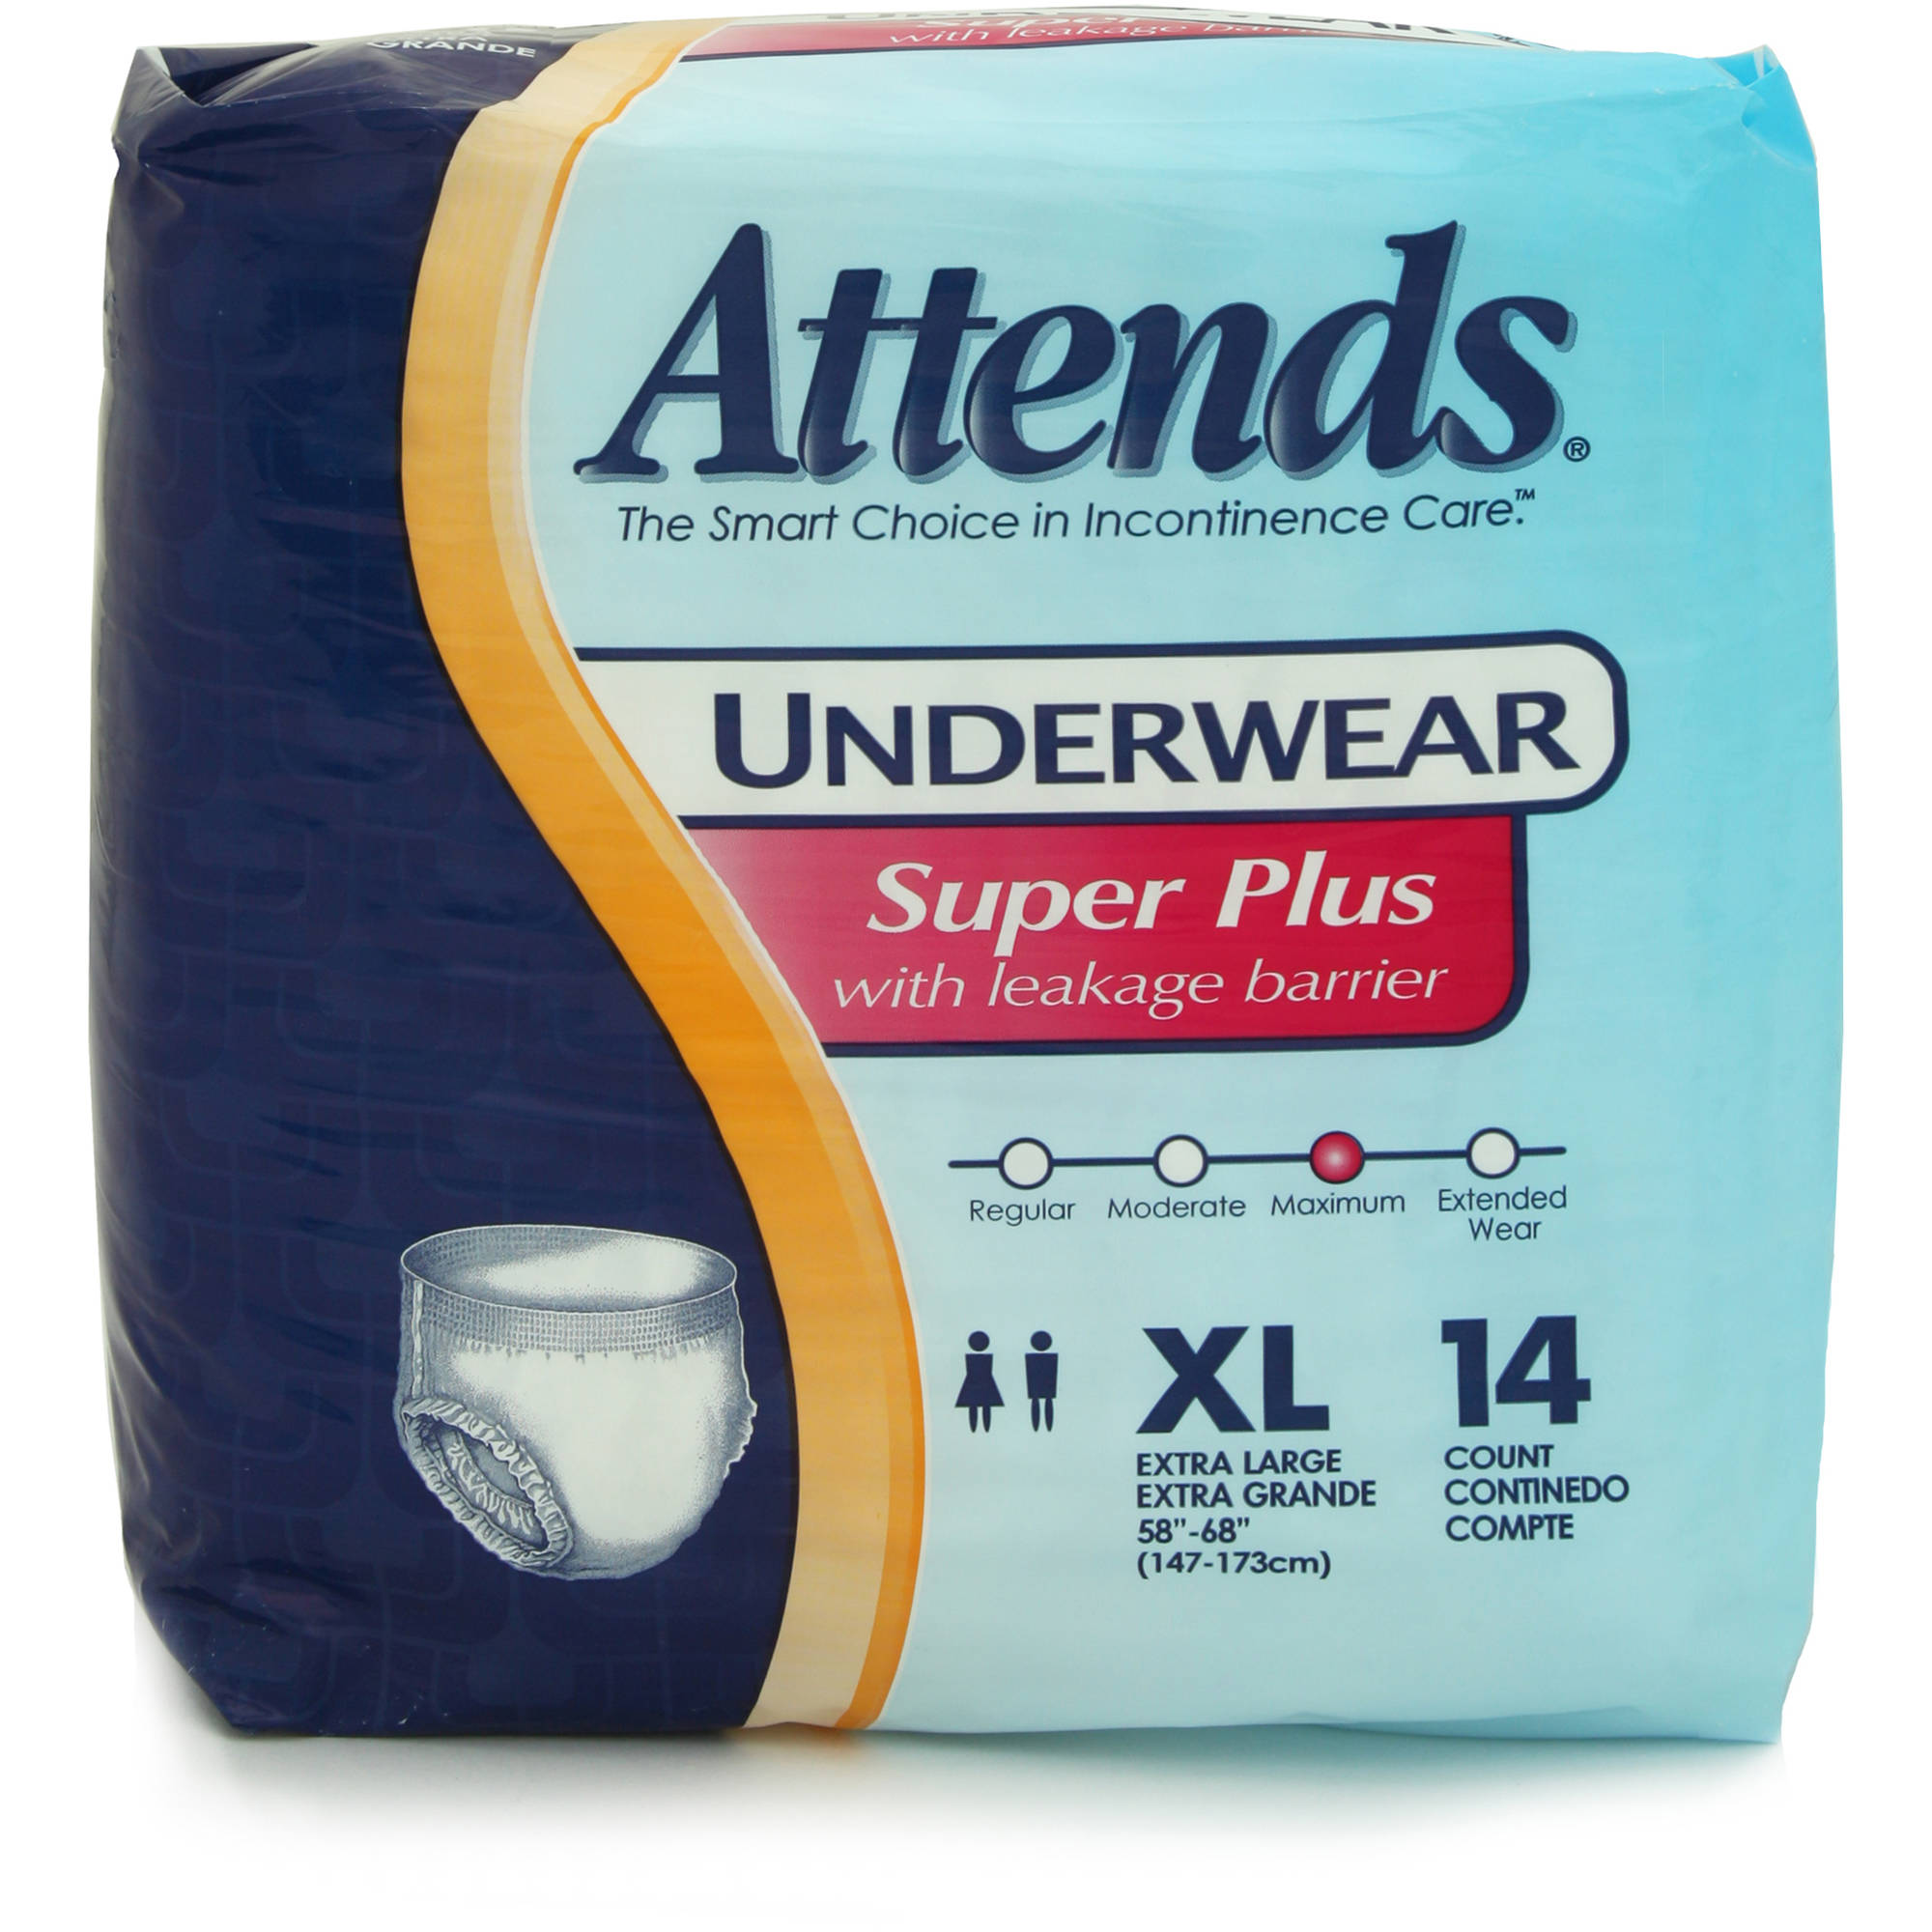 Attends Super Plus Absorbency Extra Large Protective Underwear, 14ct